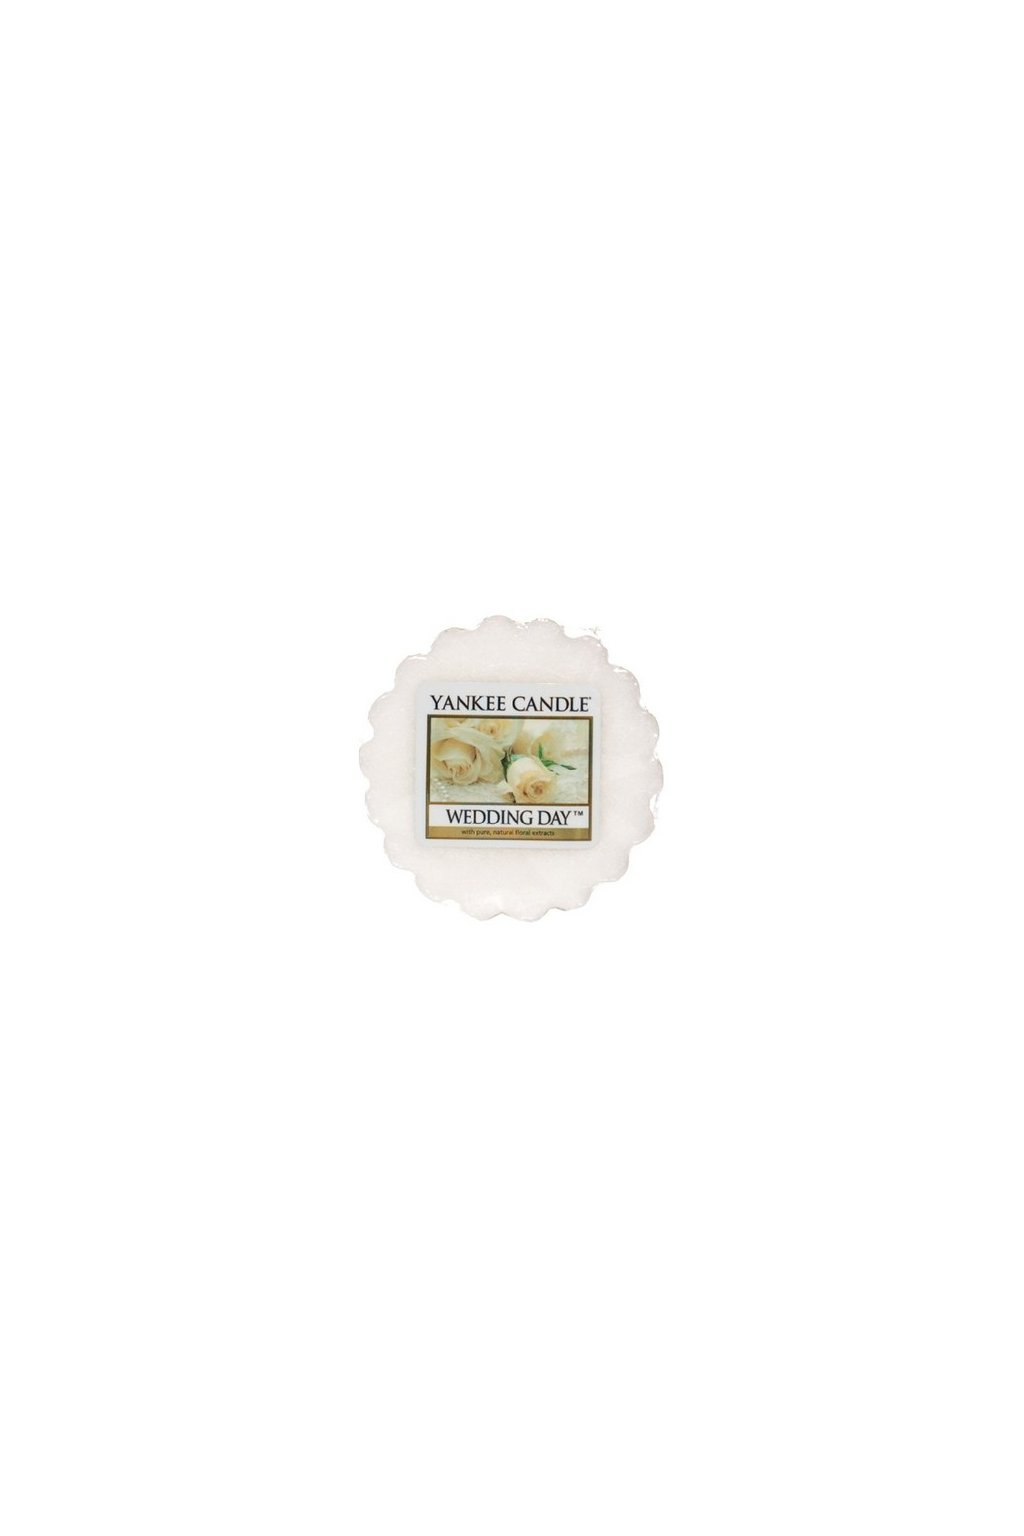 Yankee Candle Wedding Day 22g